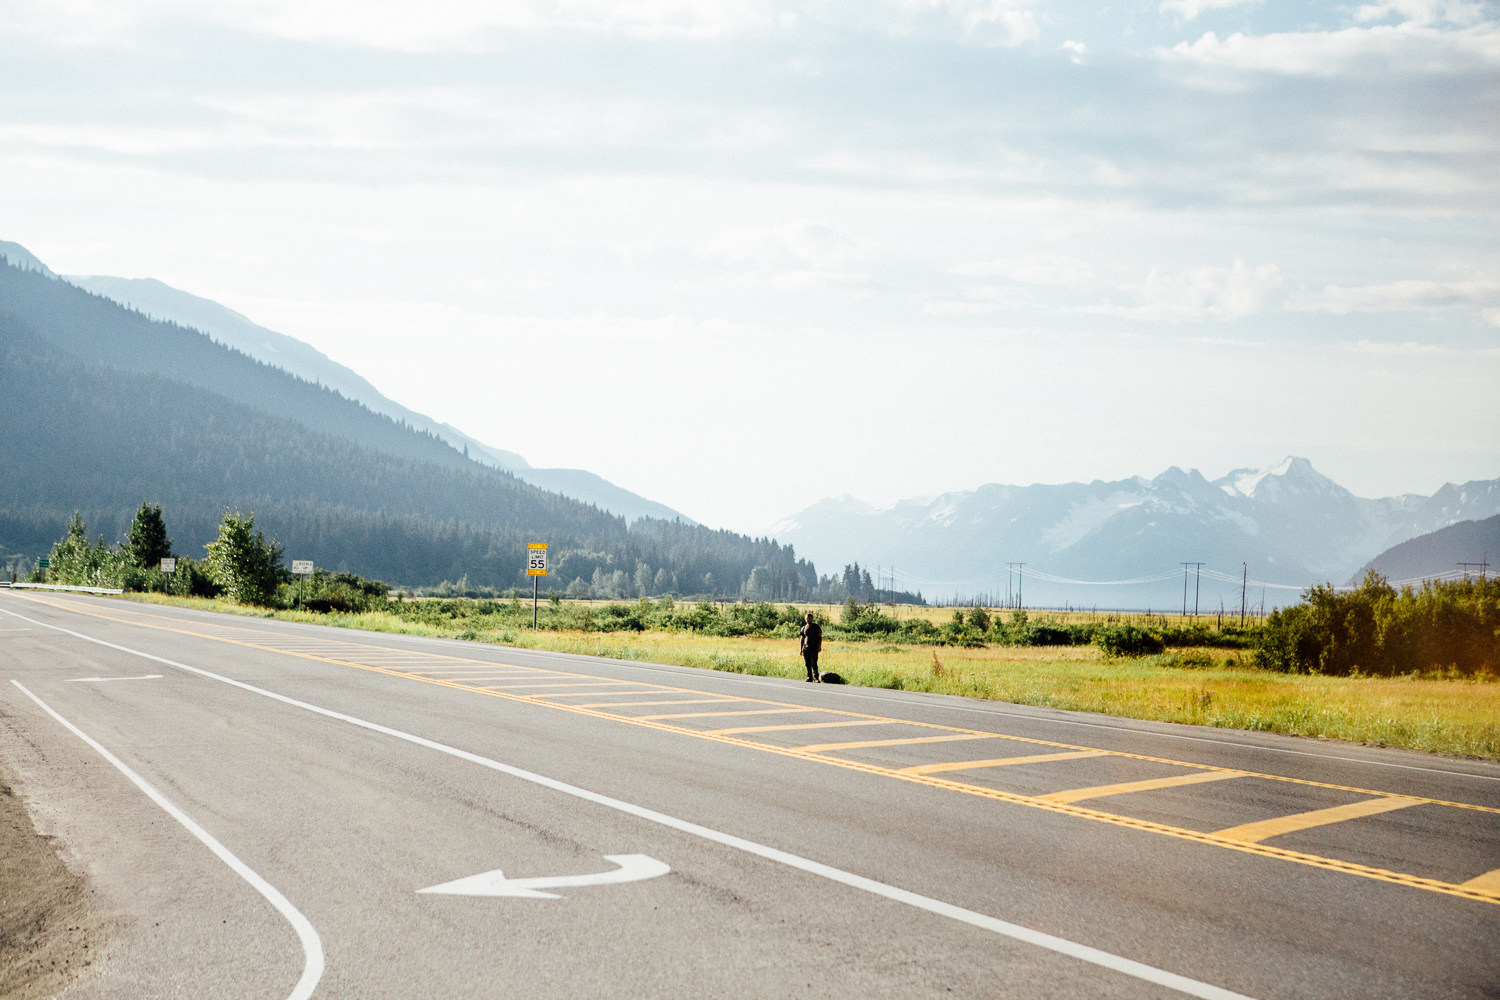 We saw this guy hitchhiking on the way to Alyeska resort. I bet he had an interesting story to tell. (DSLR)